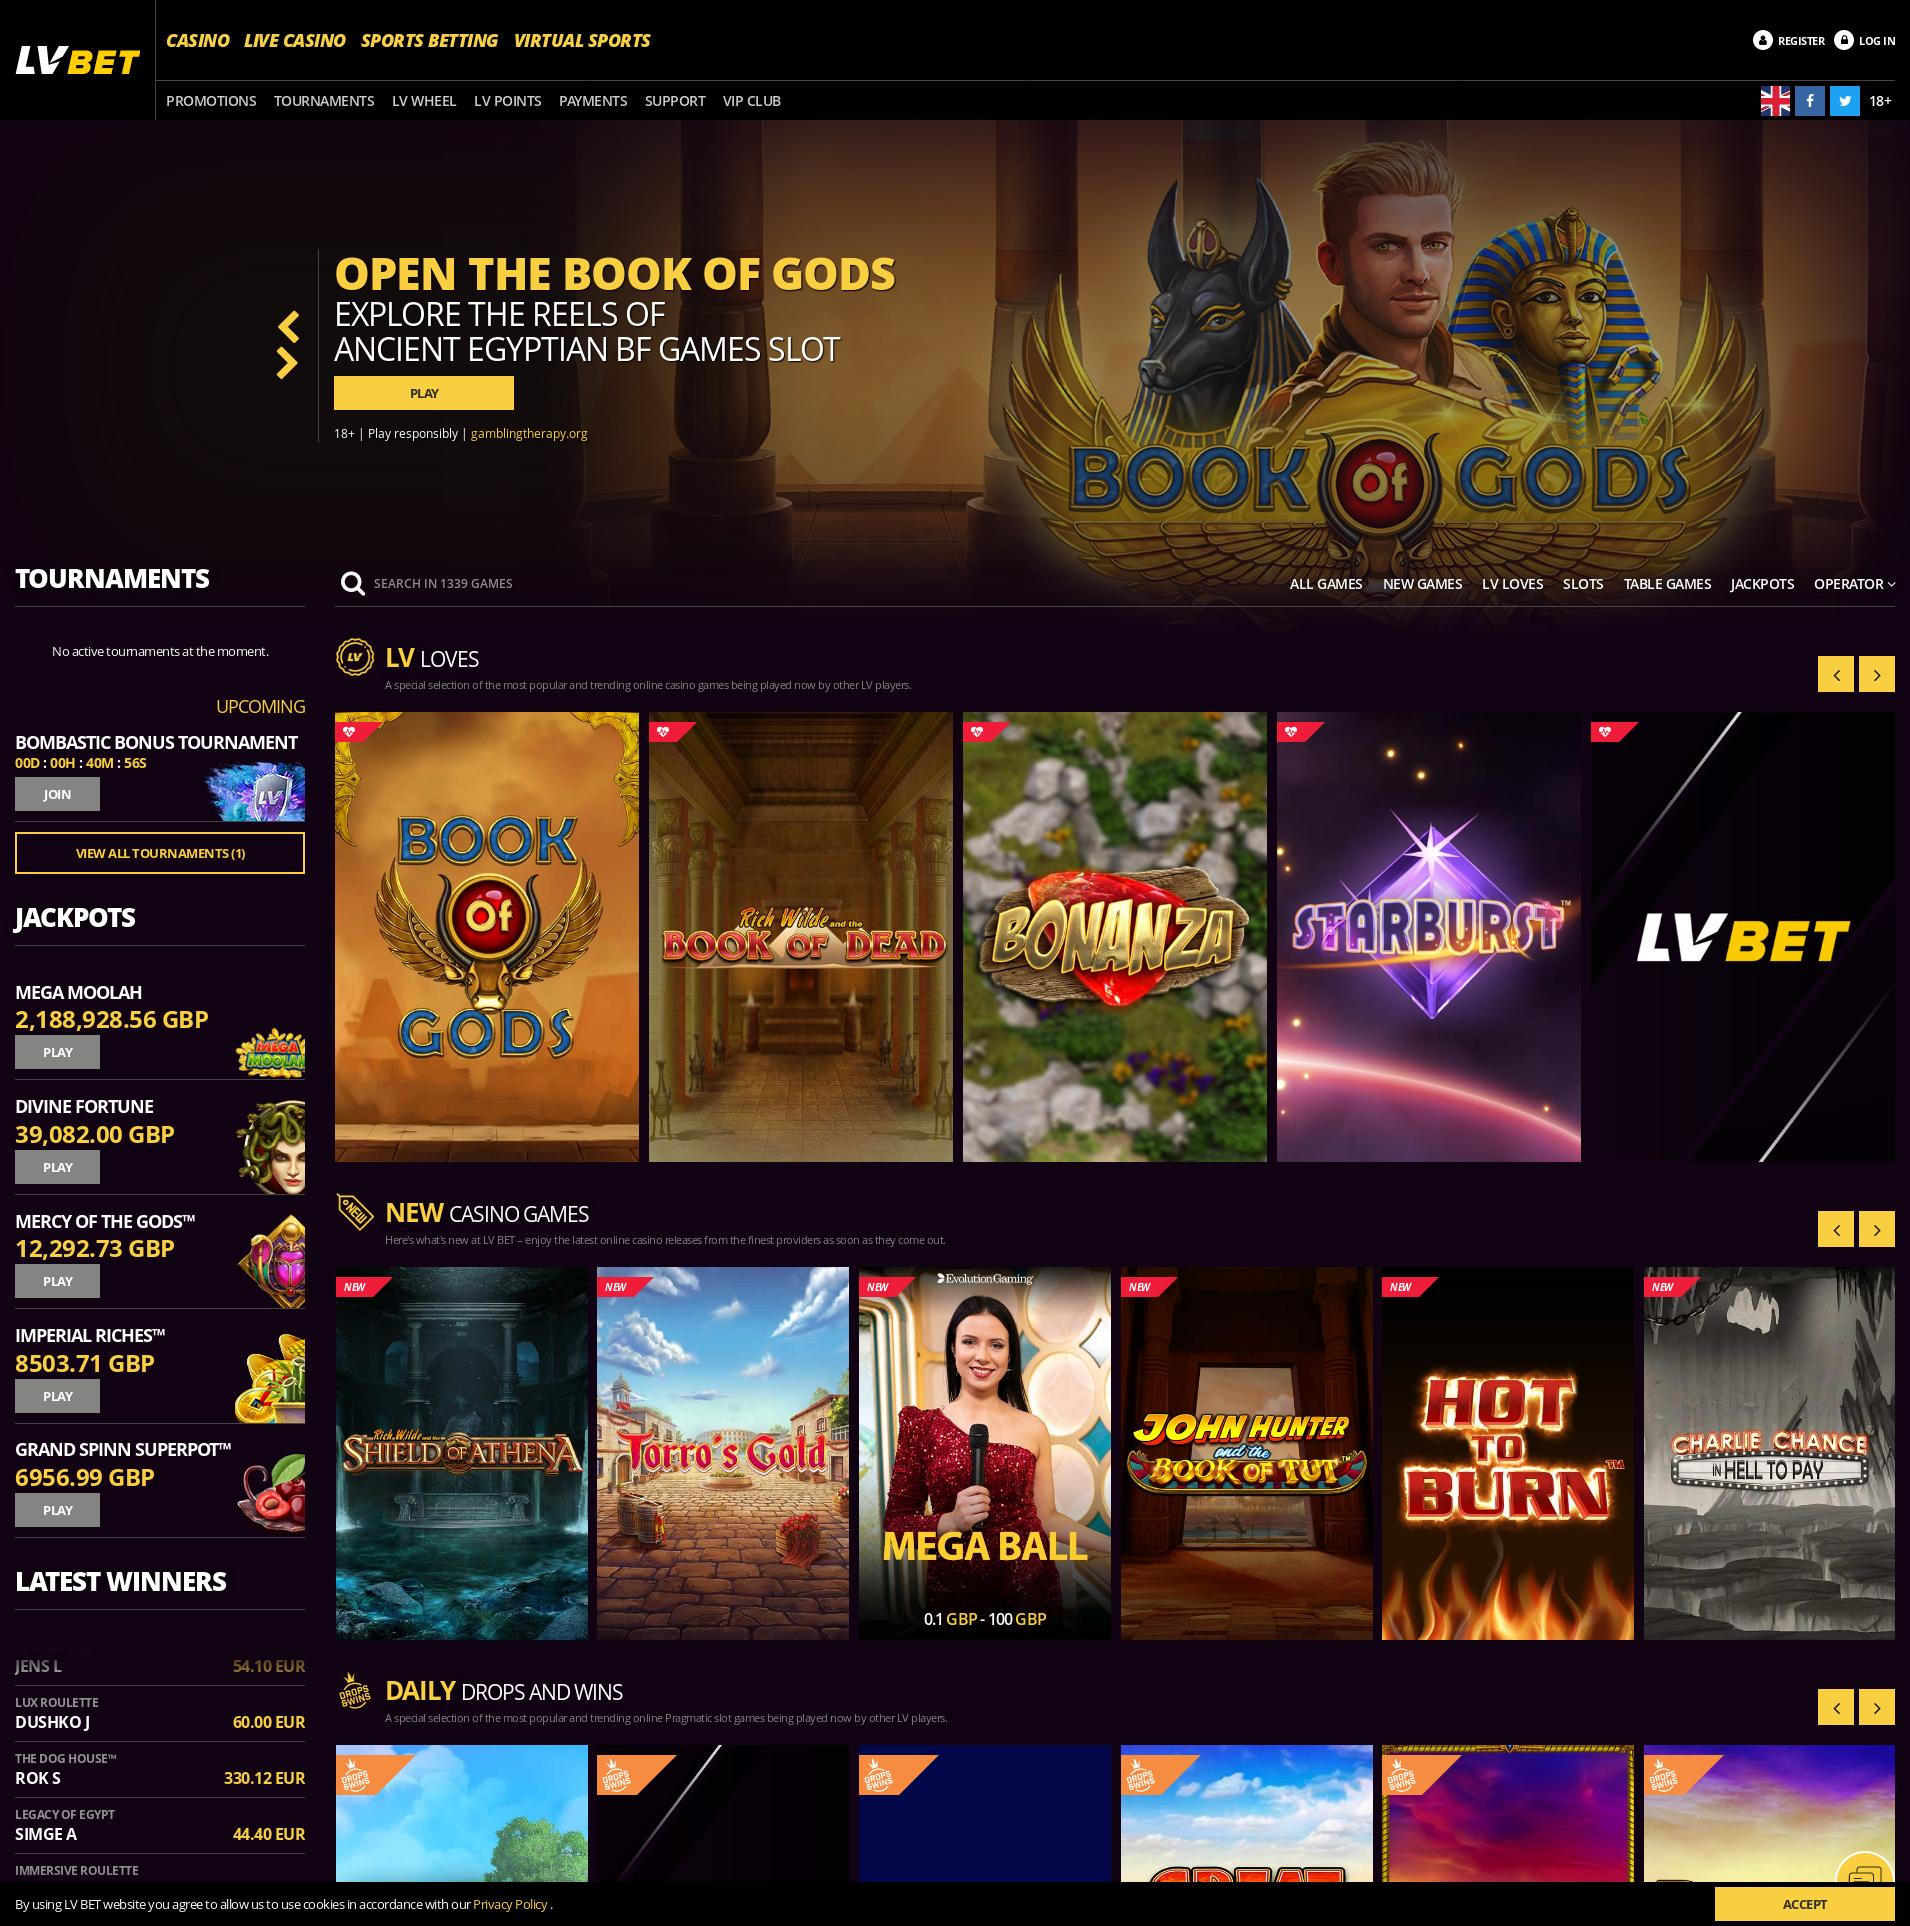 Casino screen Lobby 2020-05-29 for United Kingdom